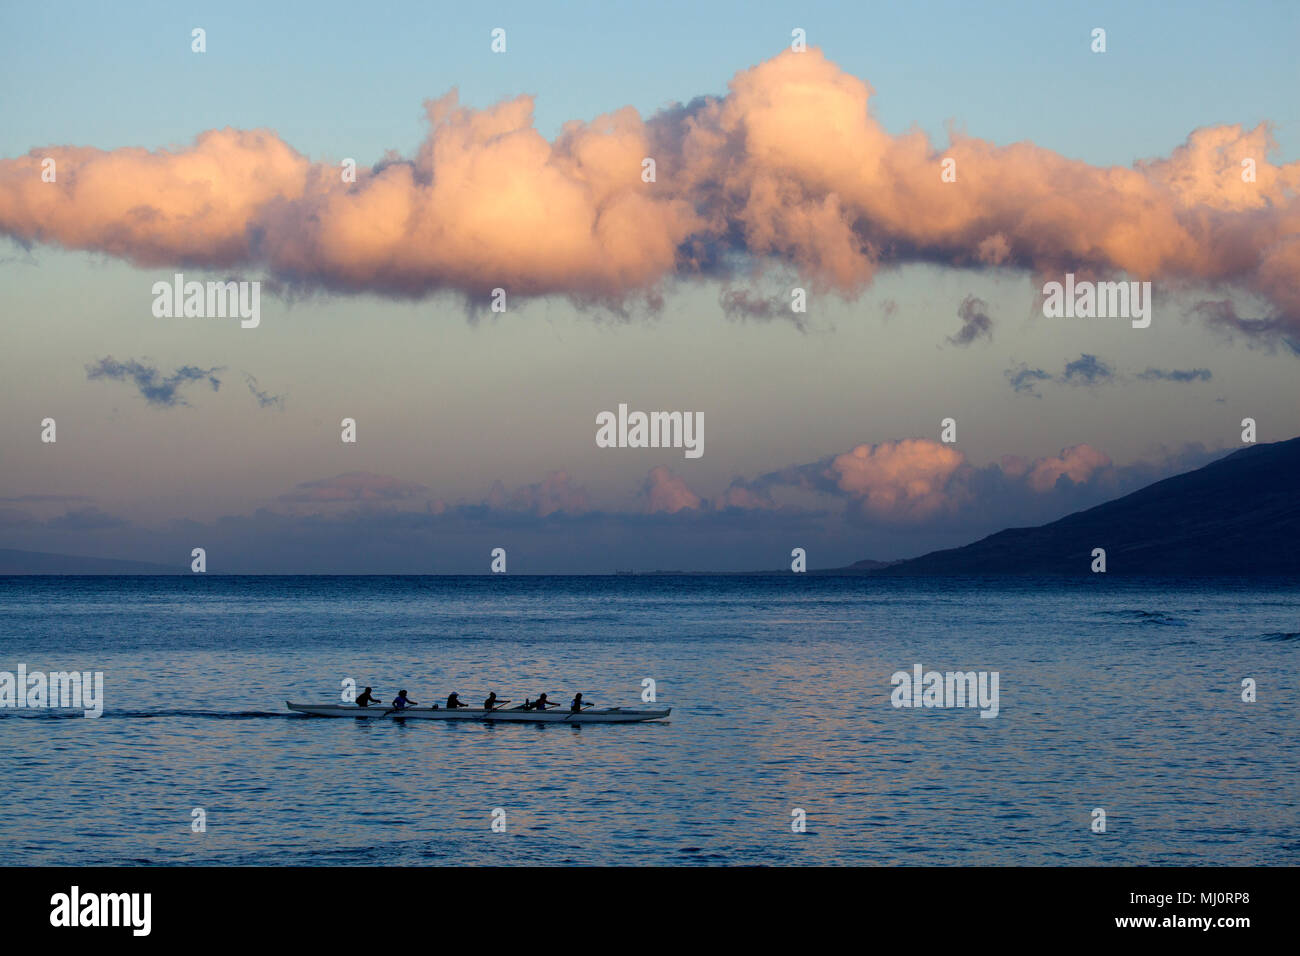 Canoe paddlers at Cove Park, Kihei, Maui, Hawaii. - Stock Image